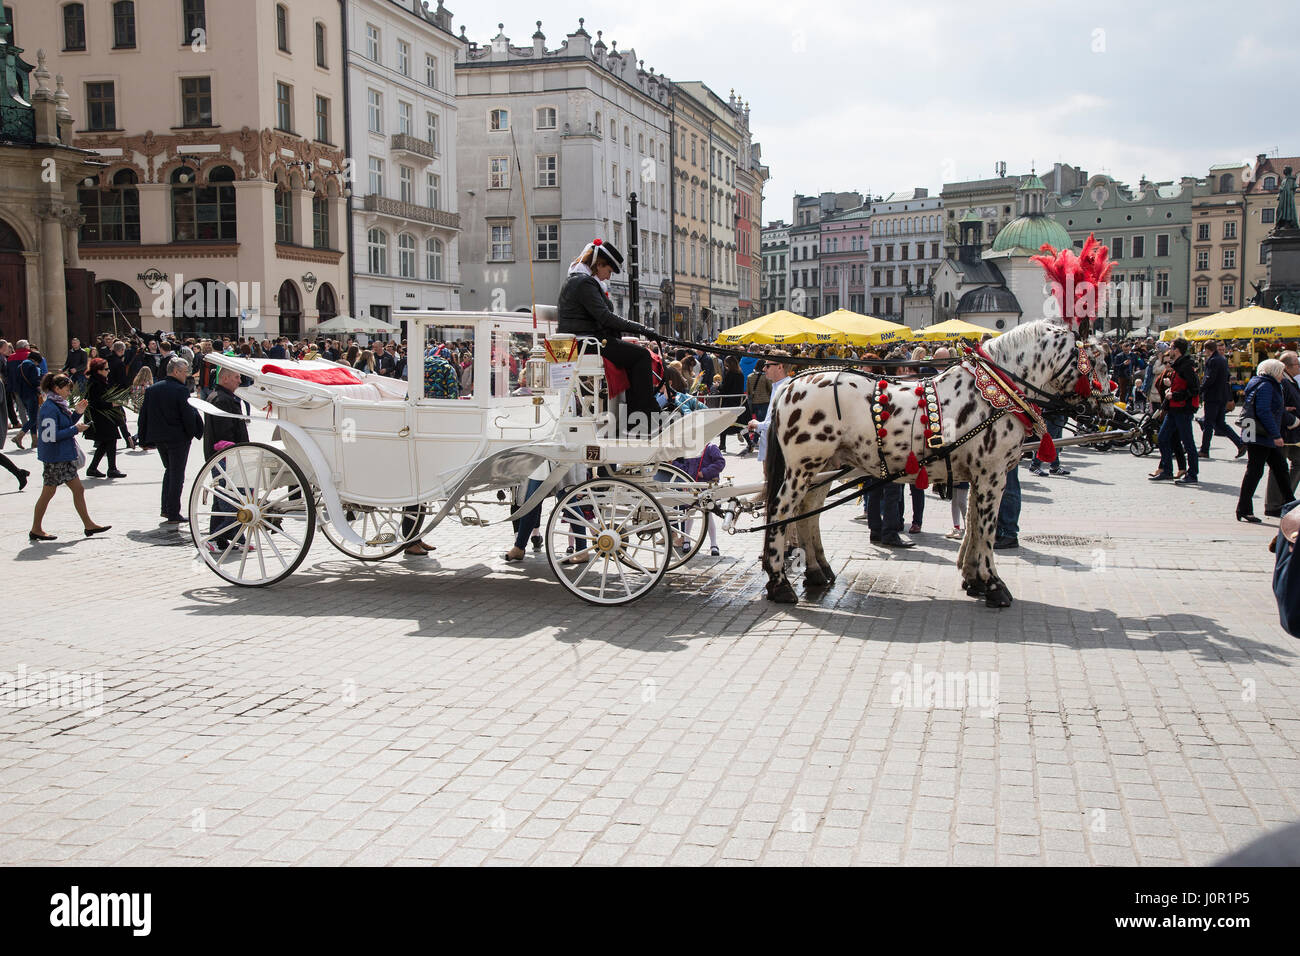 ffc7dca6513 Horse and carriage tours in the main square in Krakow old town - Stock Image